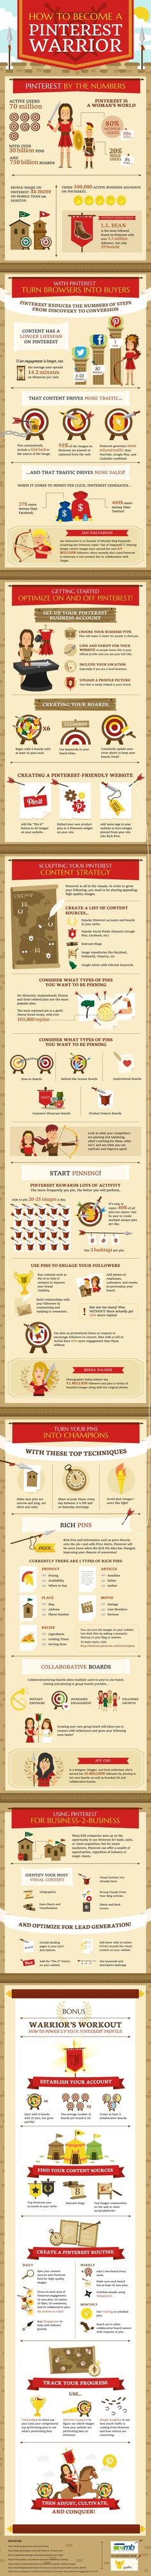 How to Become a Pinterest Warrior: #SocialMediaMarketing #Pinterest…